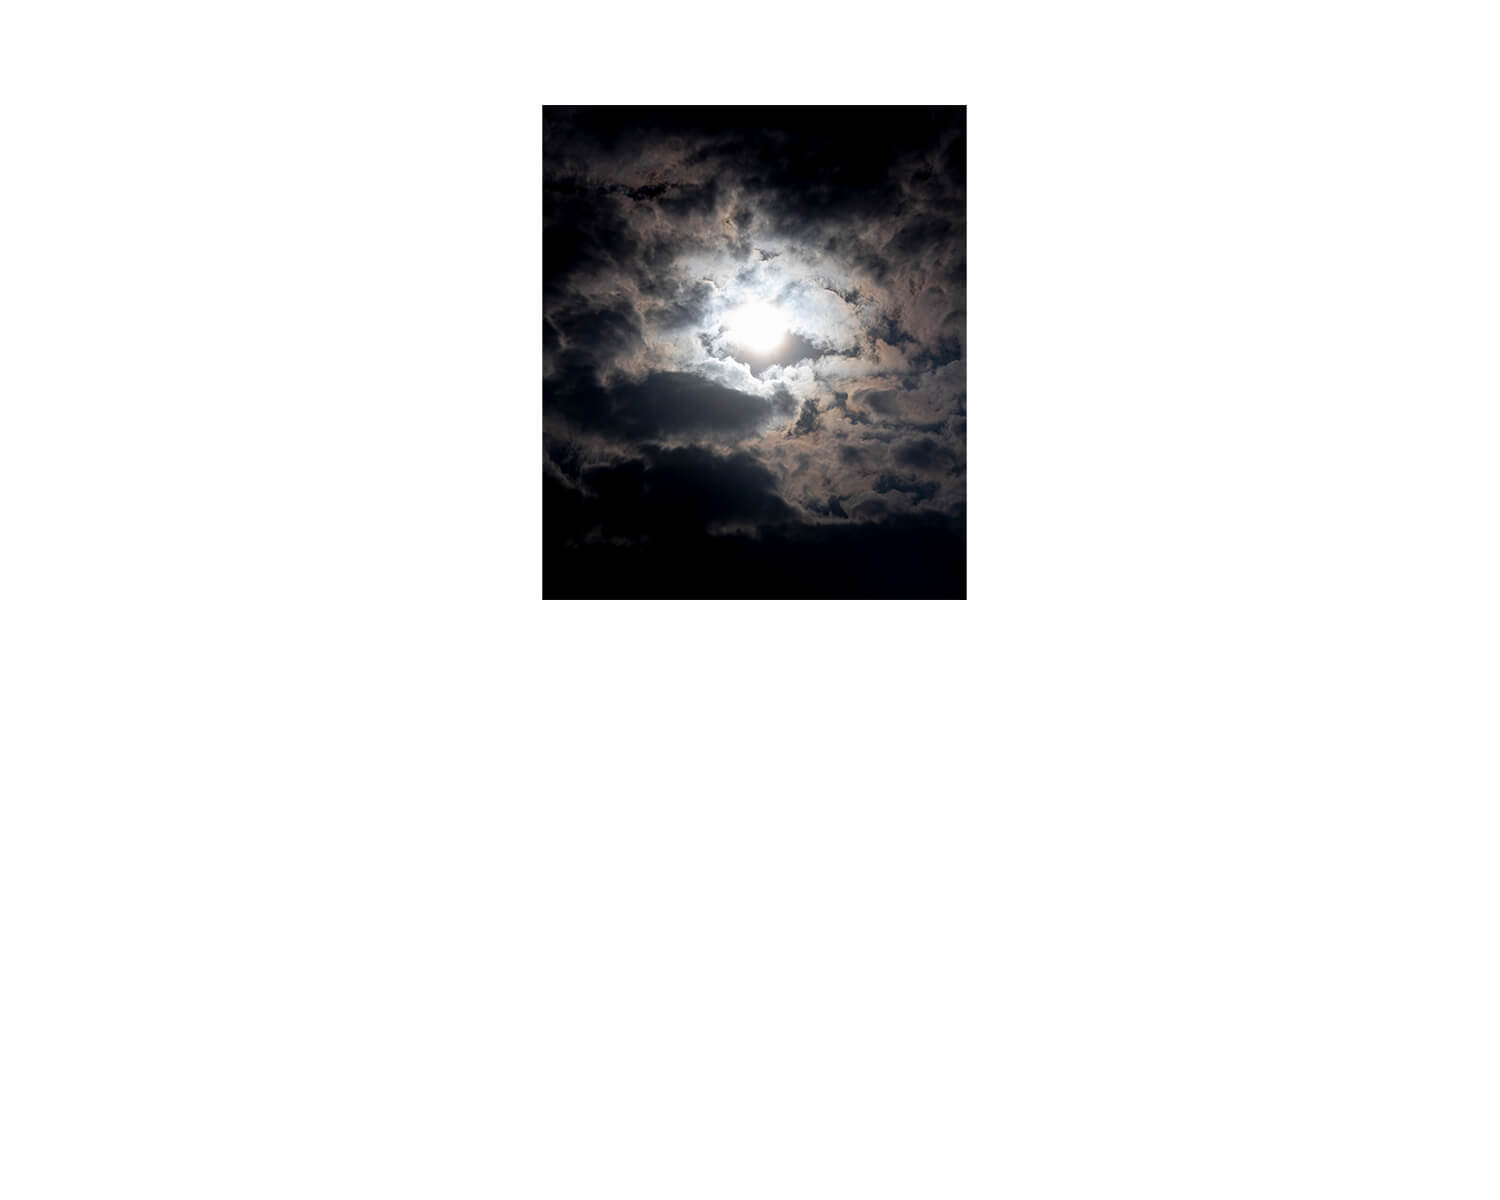 Tony Mak - To The West Of The Solitary Sea. Night sky scene with bright moonlight behind clouds